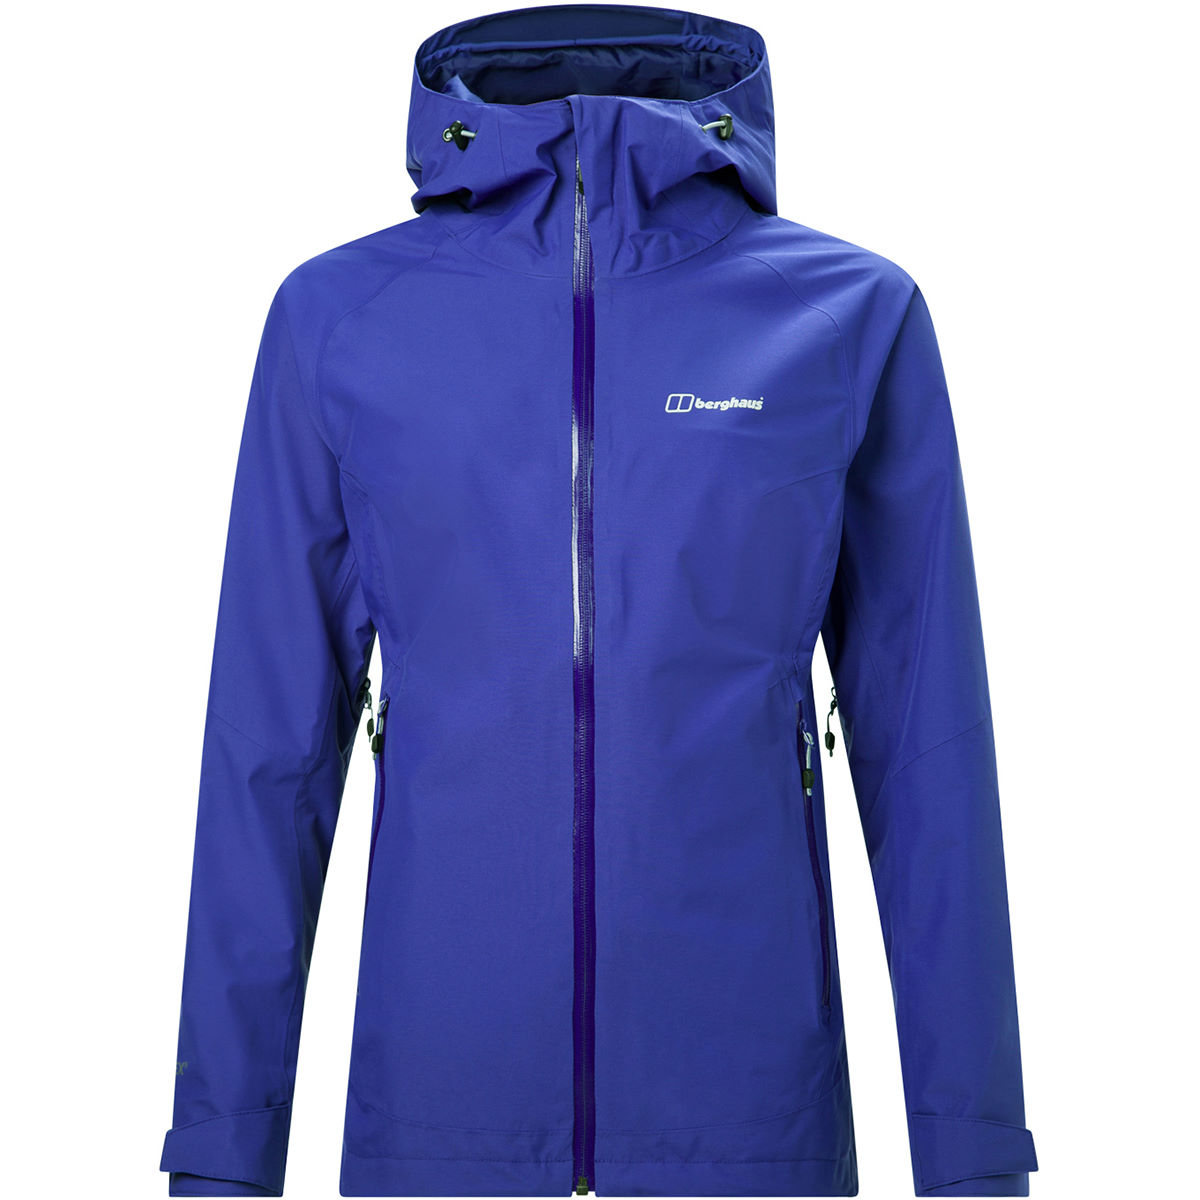 Berghaus Berghaus Womens Ridgemaster Vented Waterproof Jacket   Jackets